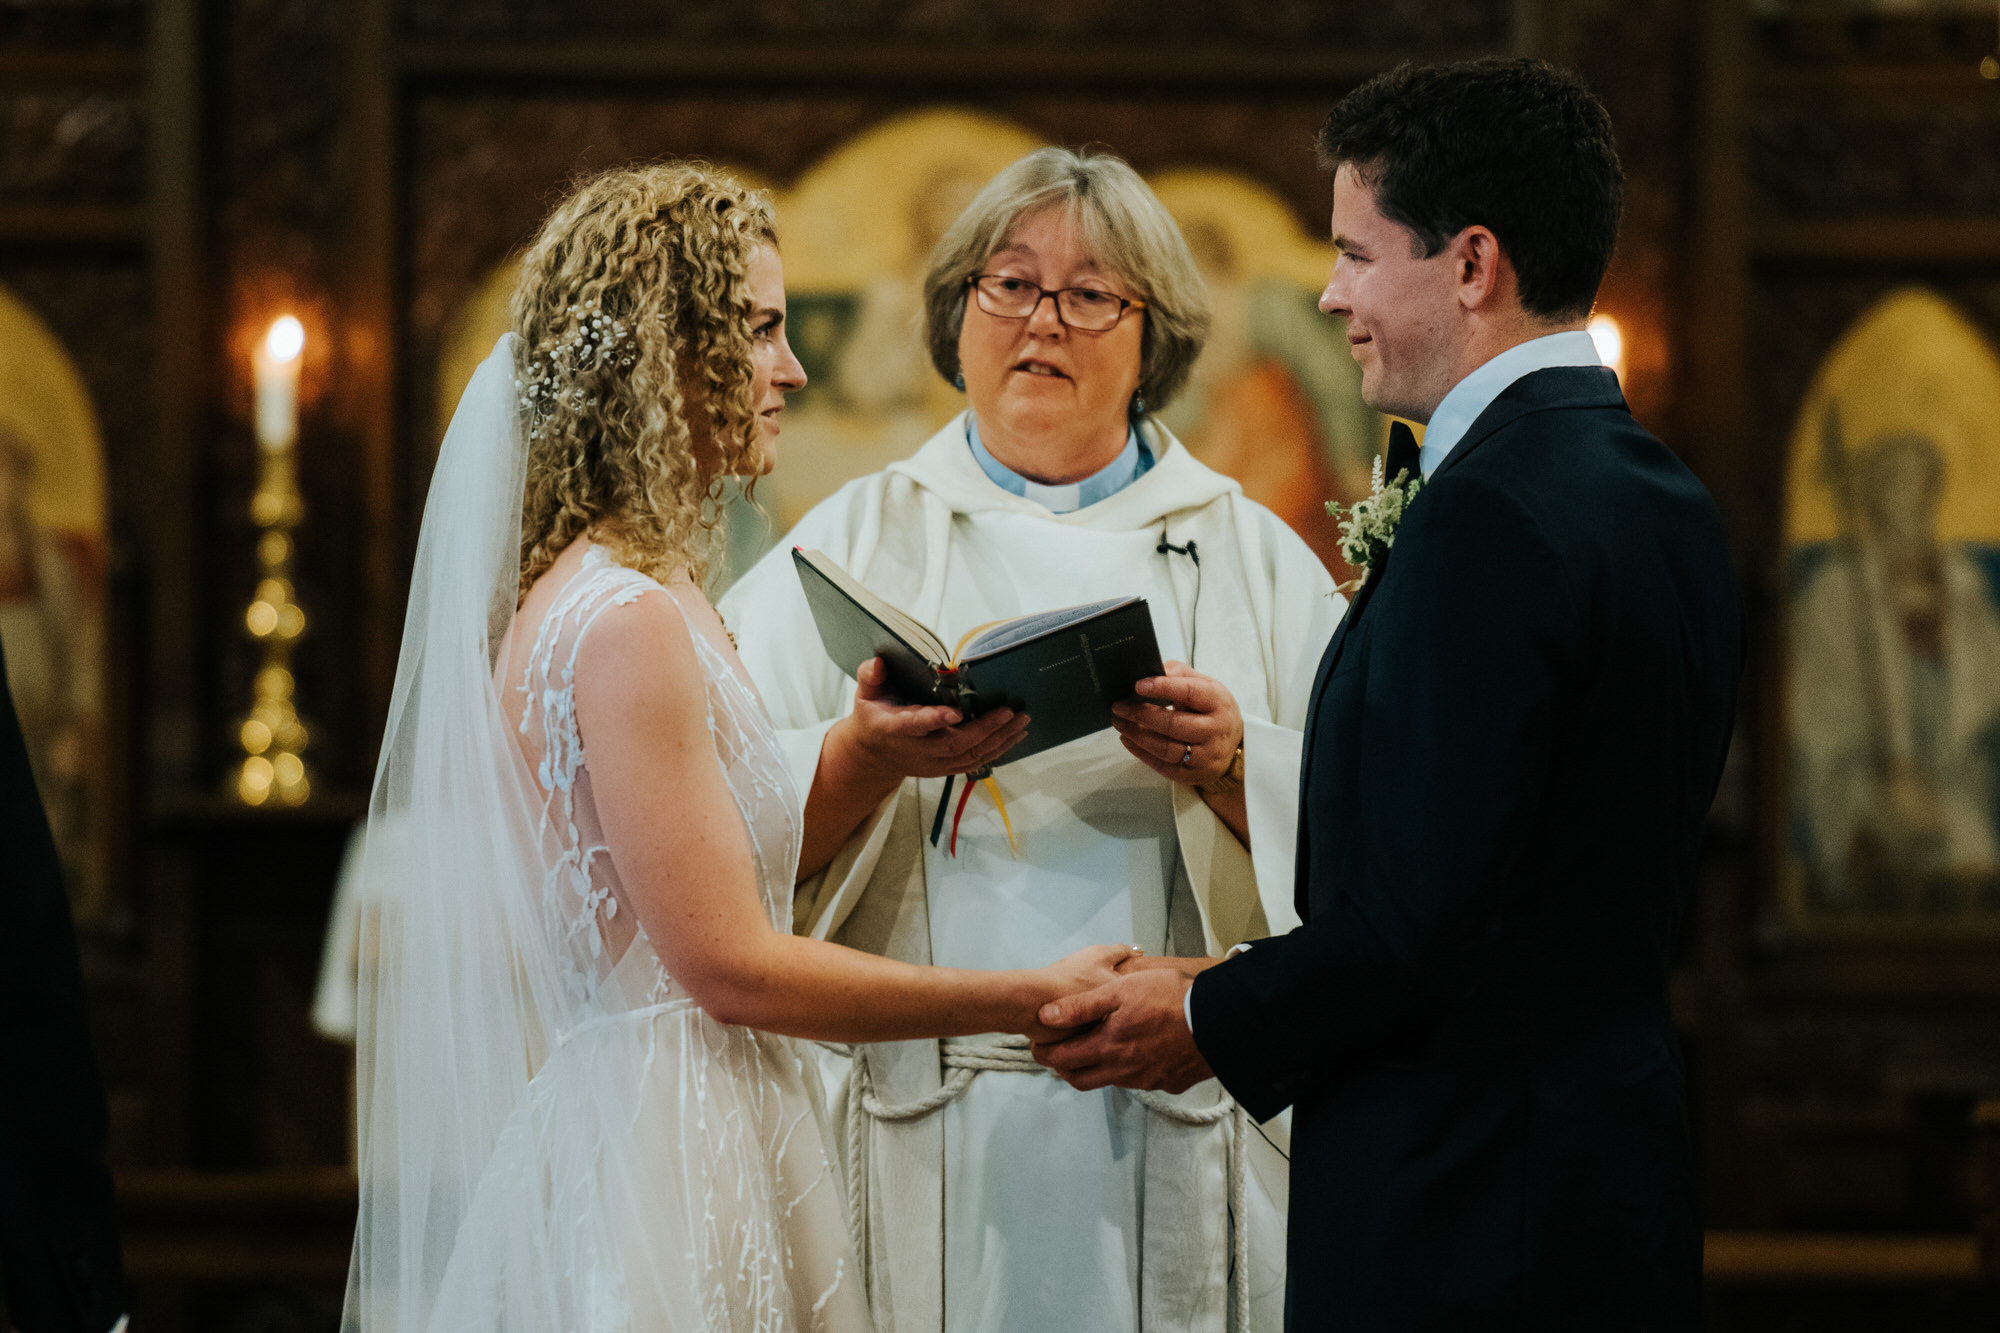 Bride and Groom exchange vows in church wedding ceremony